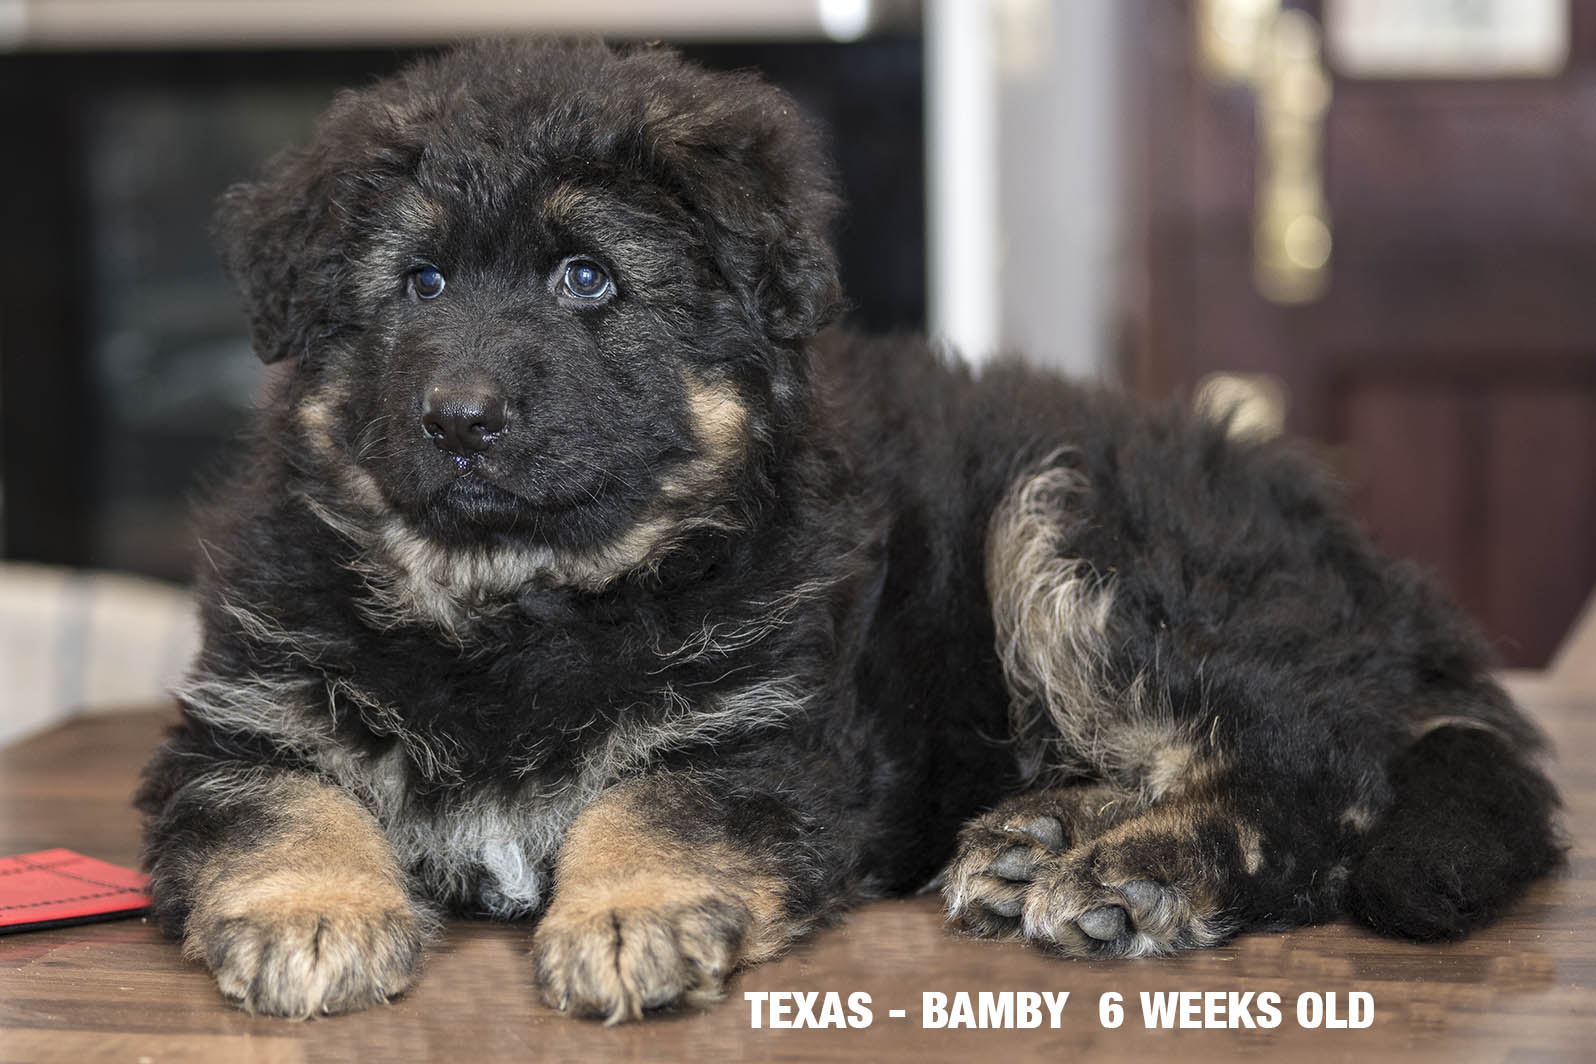 Texas Bamby Female Puppy 6 weeks old